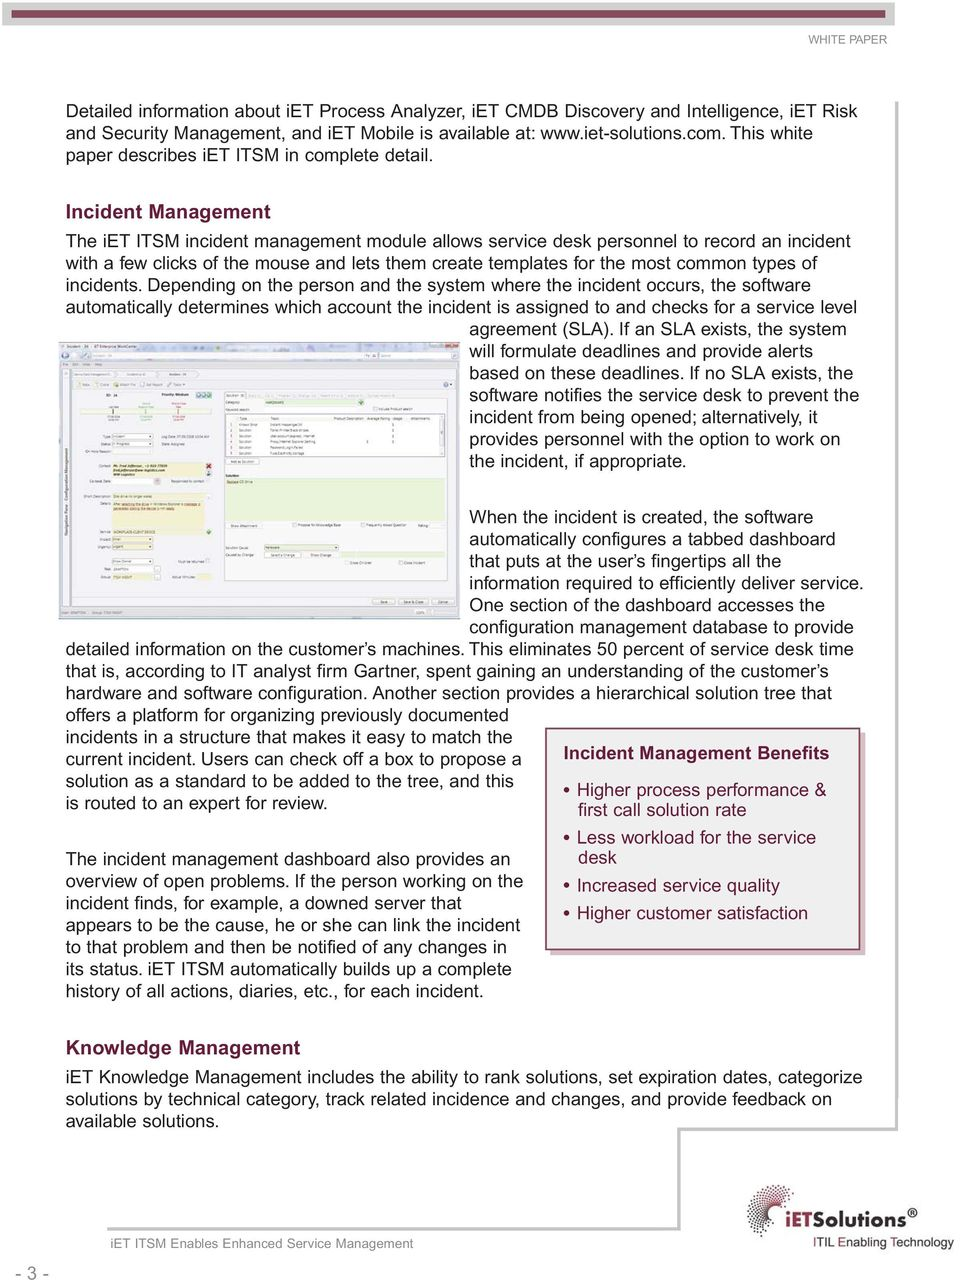 Incident Management The iet ITSM incident management module allows service desk personnel to record an incident with a few clicks of the mouse and lets them create templates for the most common types